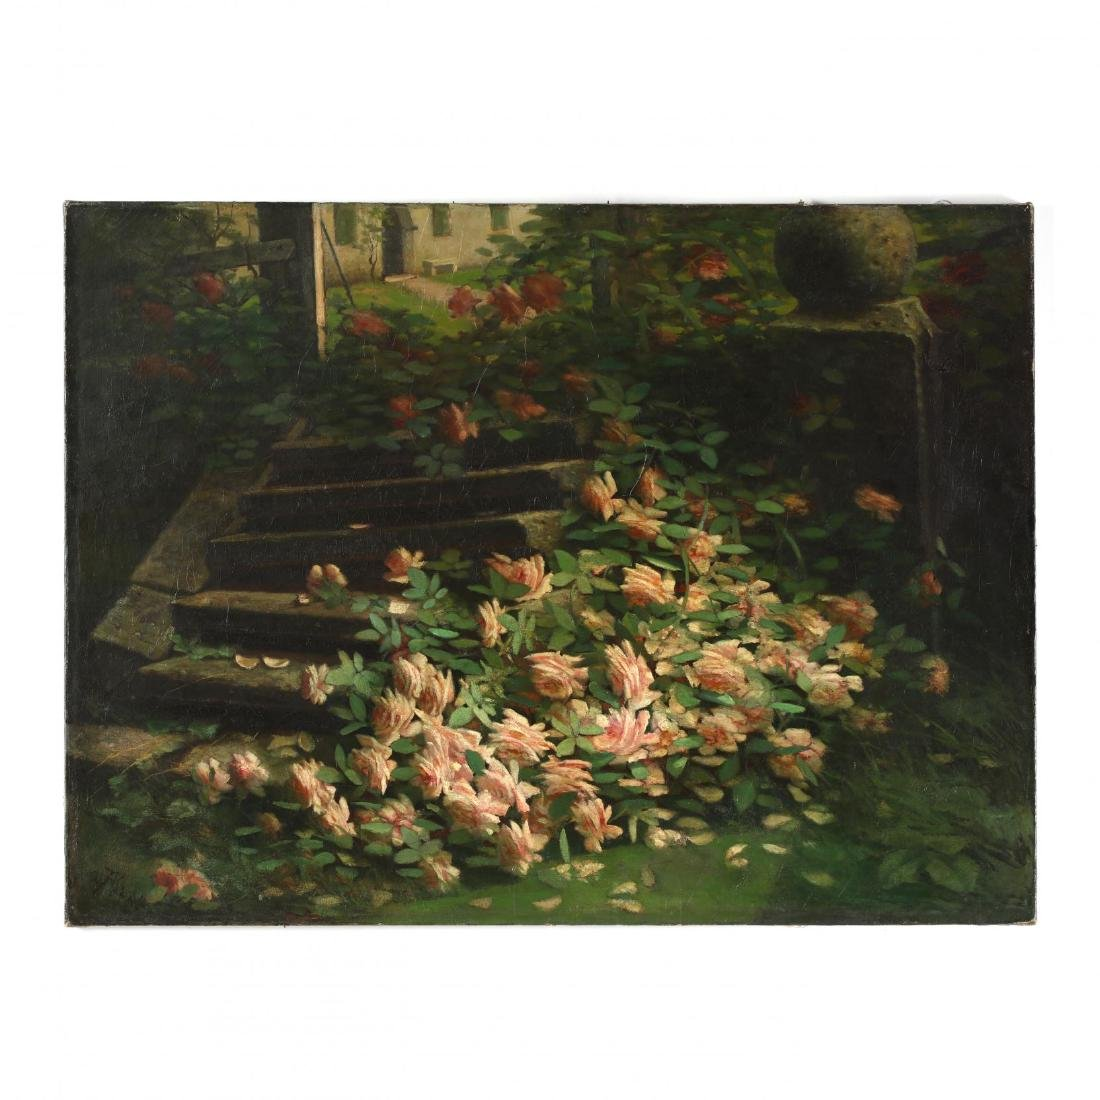 An Antique American School Painting of Roses in an